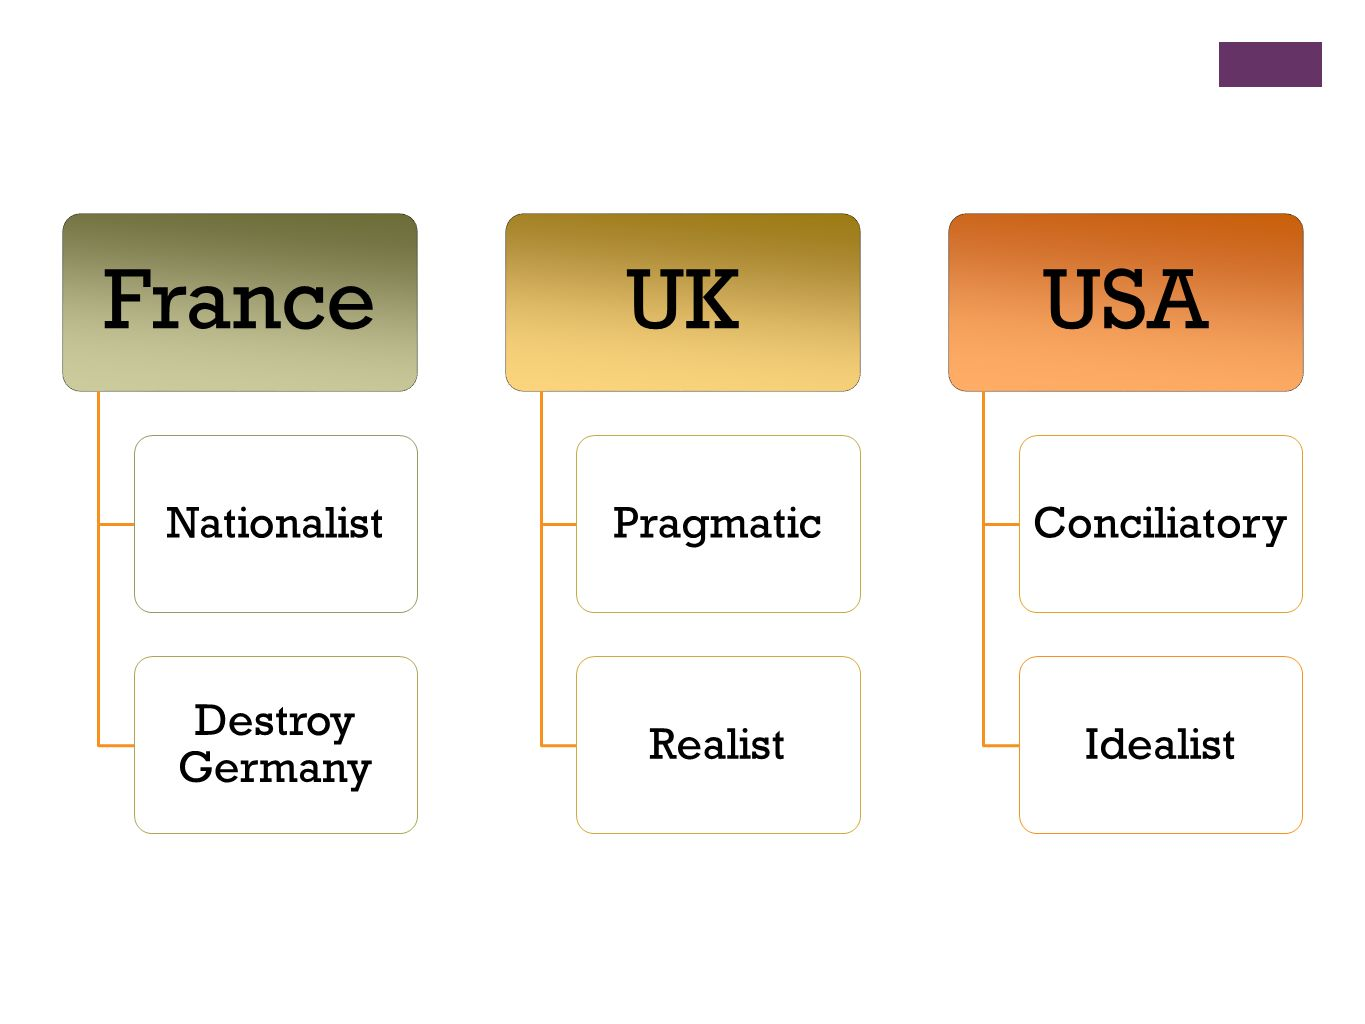 France UK USA Nationalist Destroy Germany Pragmatic Realist